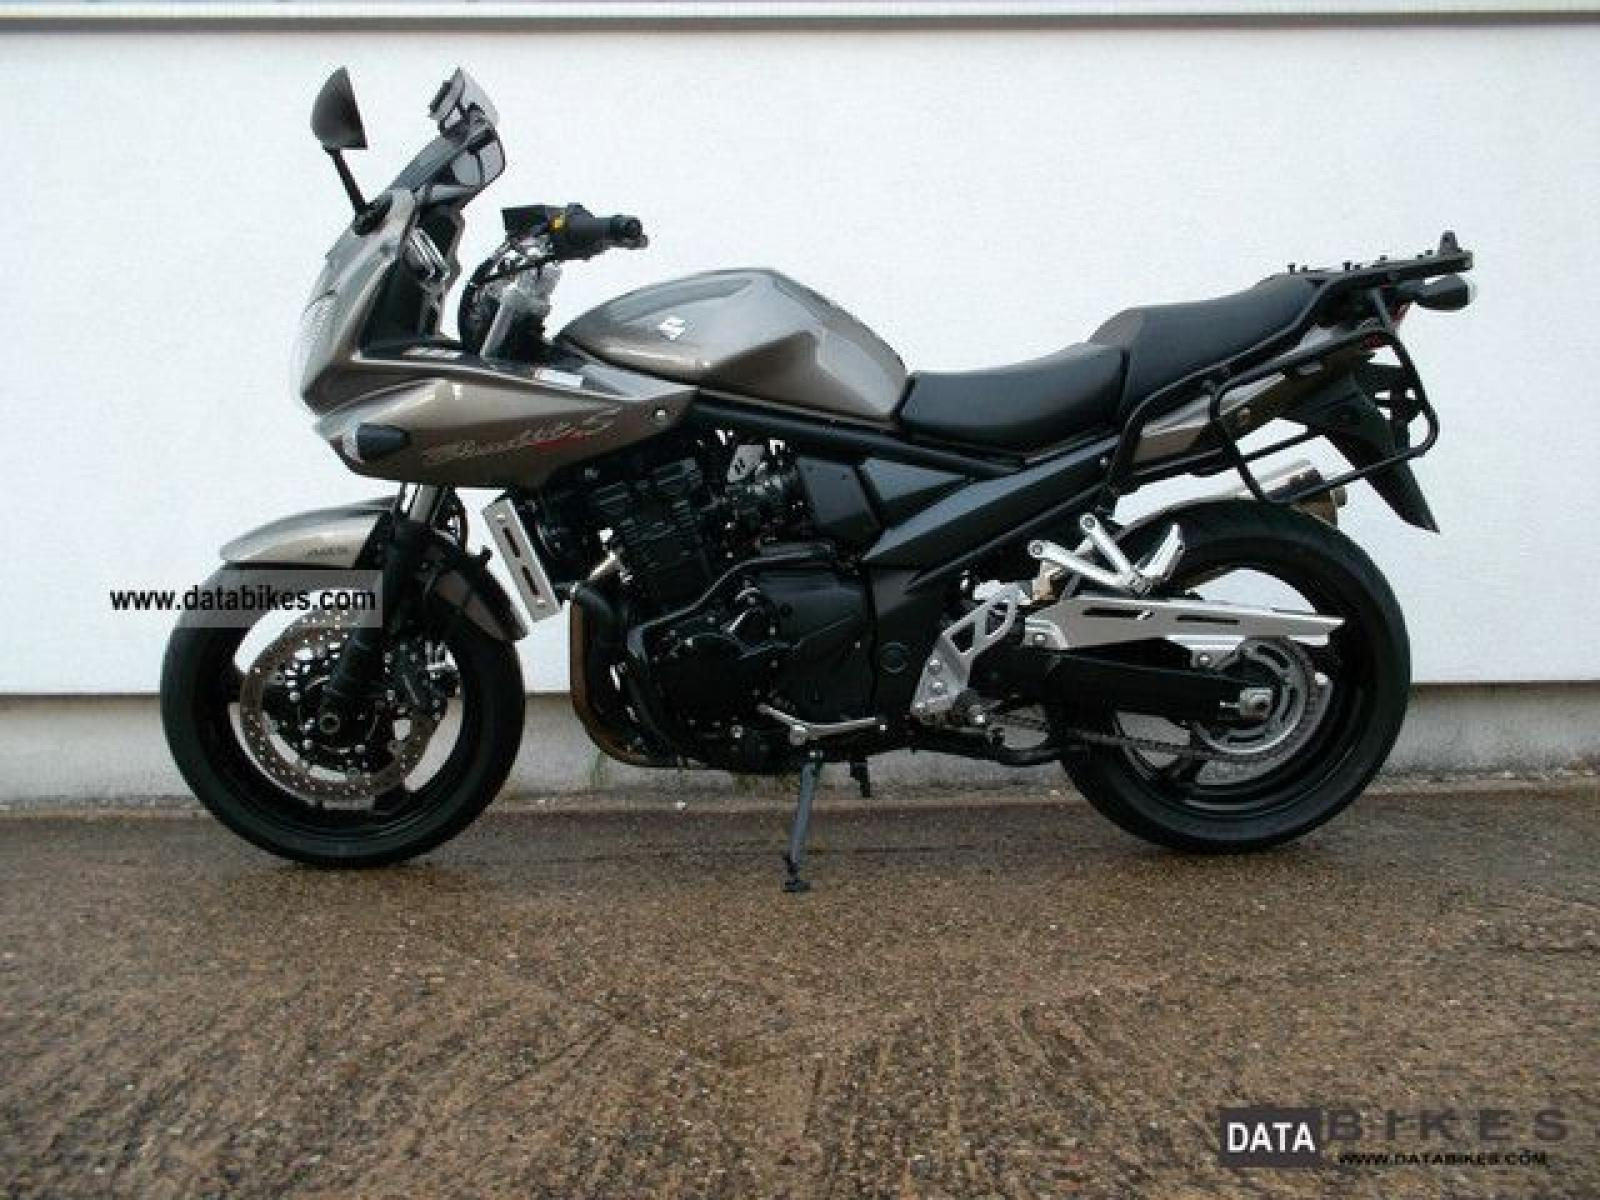 2011 suzuki bandit 1250s abs moto zombdrive com. Black Bedroom Furniture Sets. Home Design Ideas